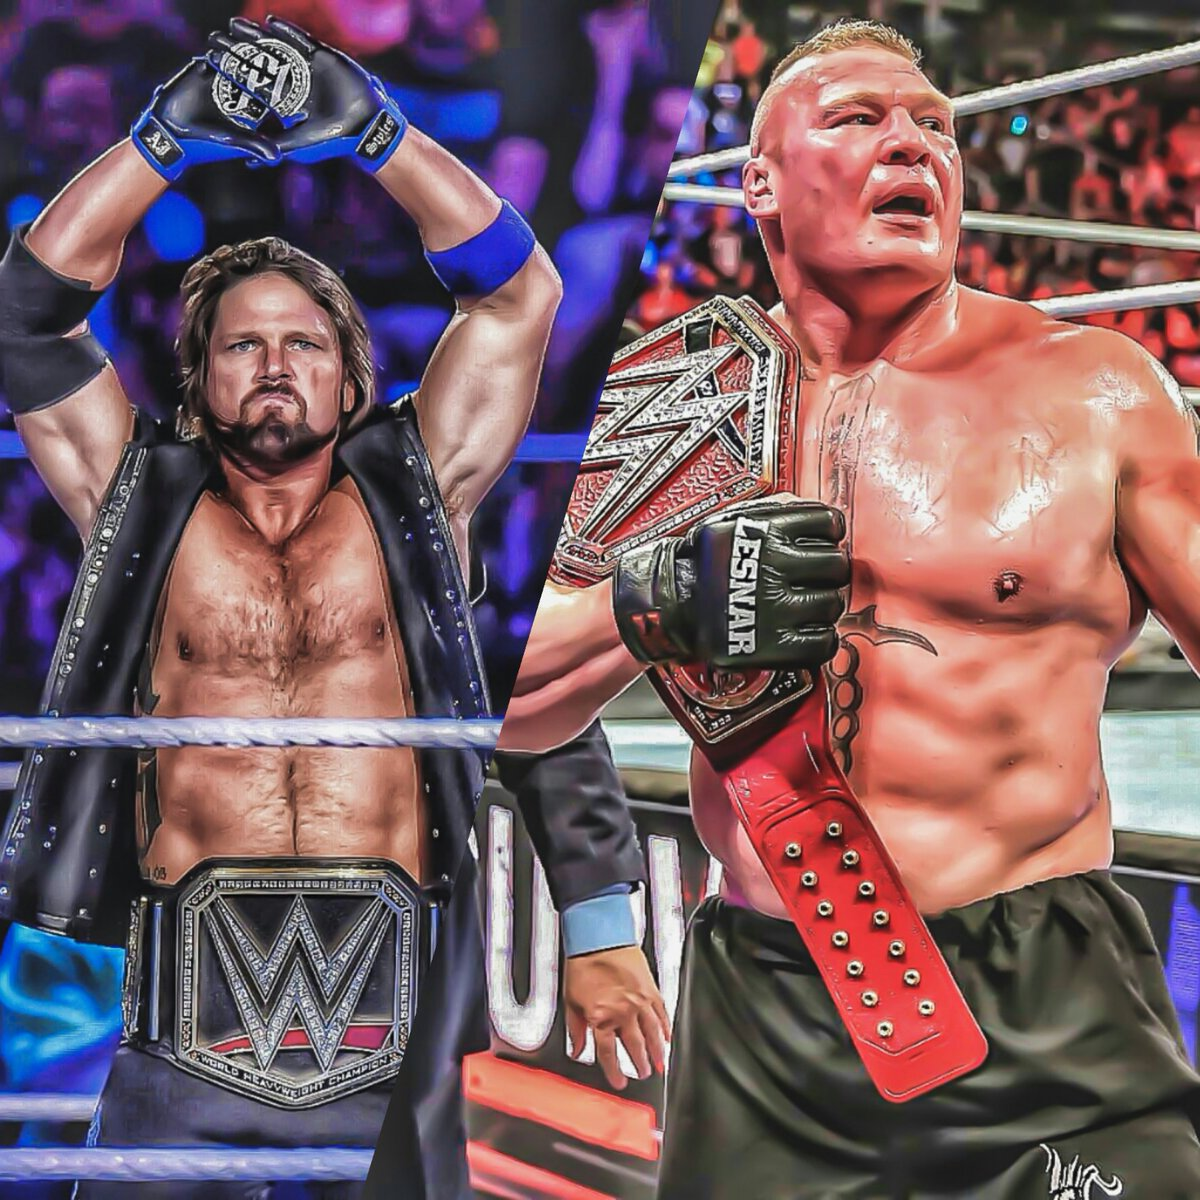 Whom Do You Prefer The Most @AJStylesOrg or #BrockLesnar #WWE #WWETLC #AjStyles #BrockLesnar #WWE #UniversalChampion #SurvivorSeries #RoyalRumble #Wrestlemania #SummerSlam #SethRollins #Raw #SDLive